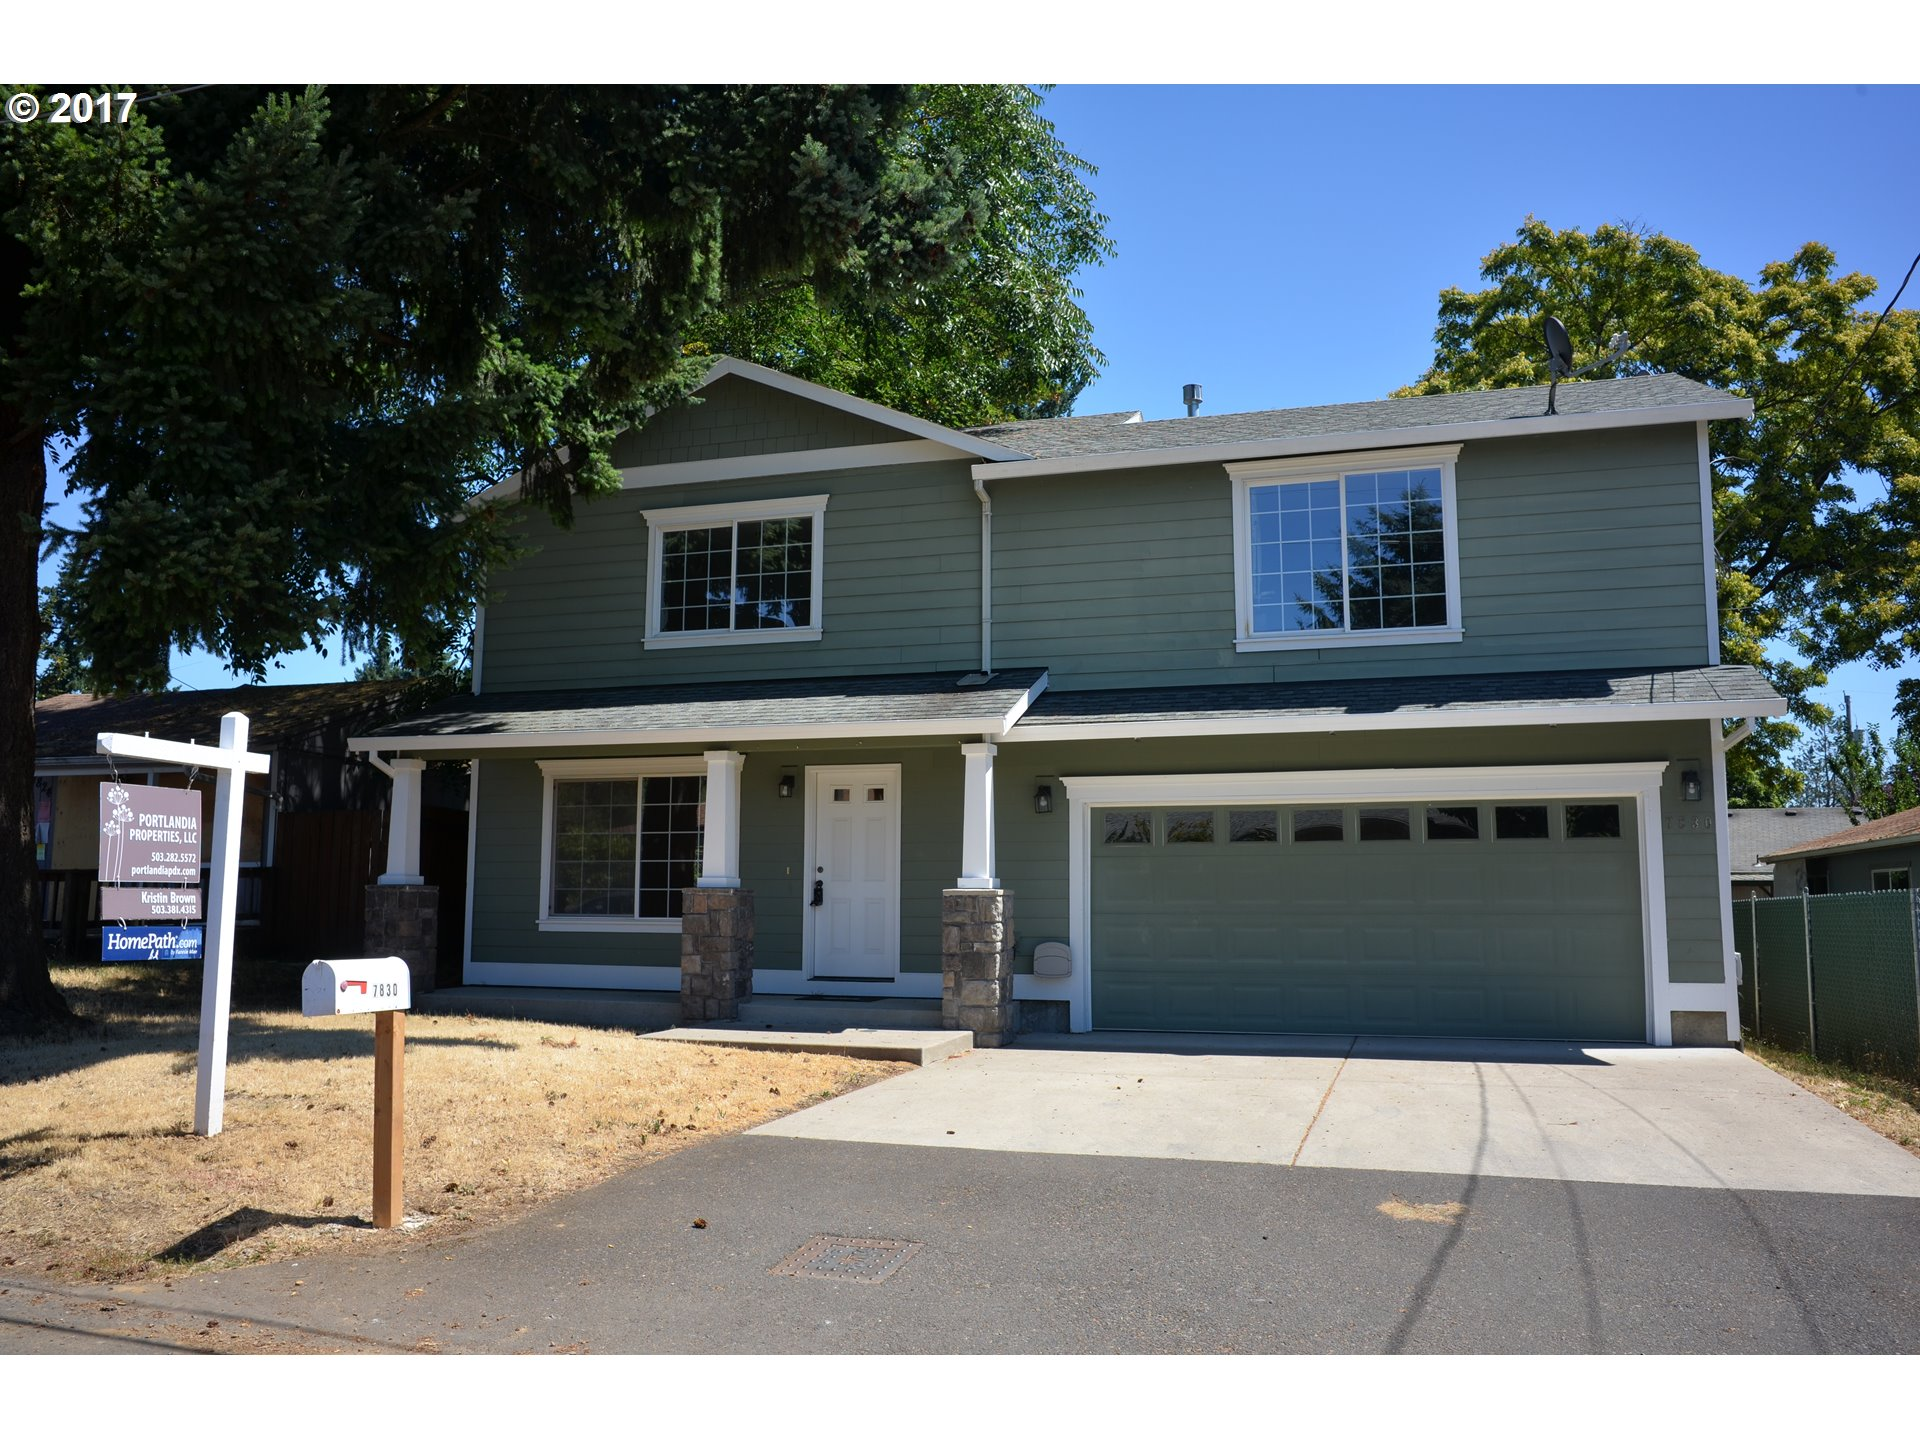 1848 sq. ft 4 bedrooms 2 bathrooms  House ,Portland, OR